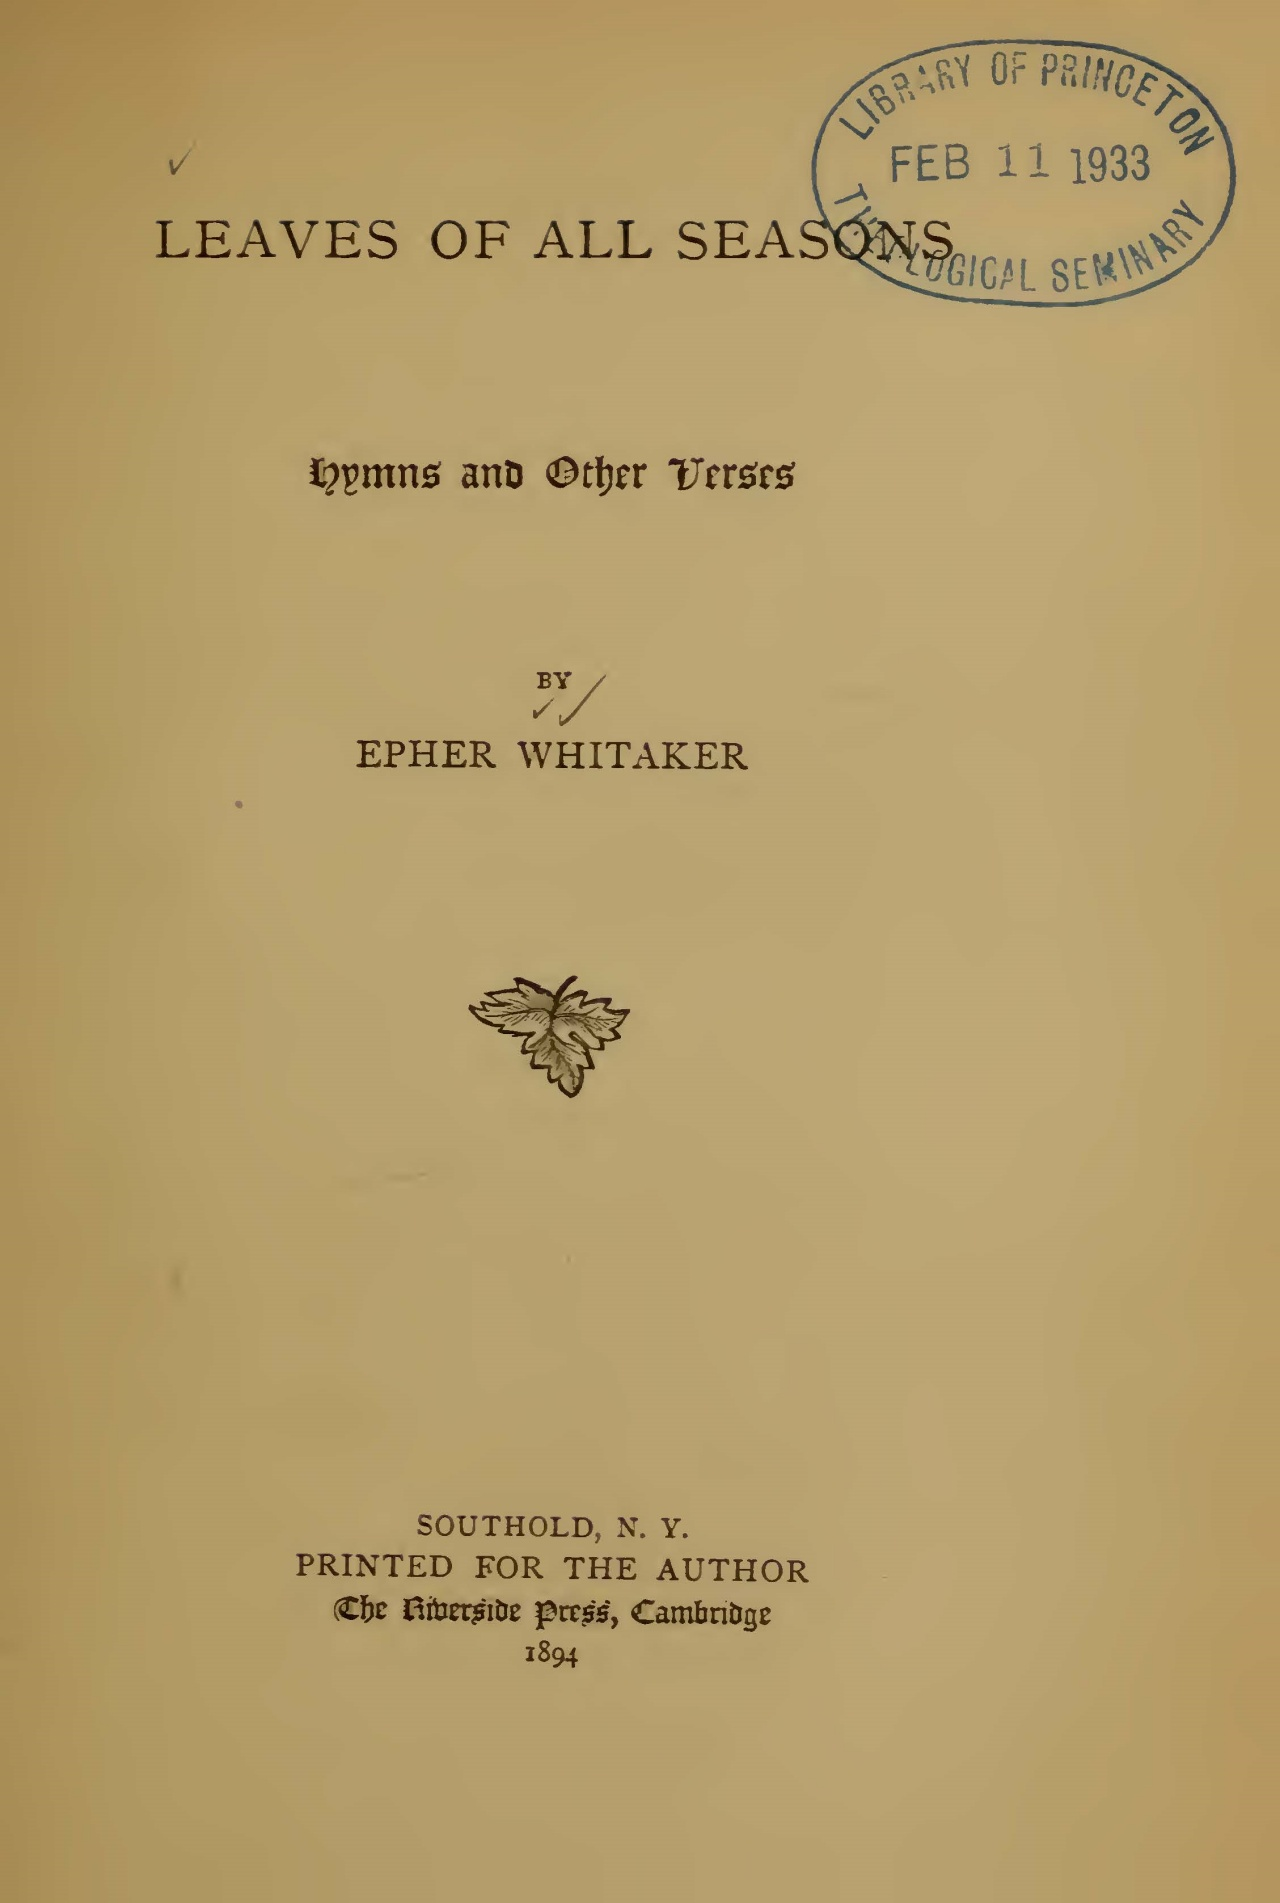 Whitaker, Epher, Leaves of All Seasons Title Page.jpg